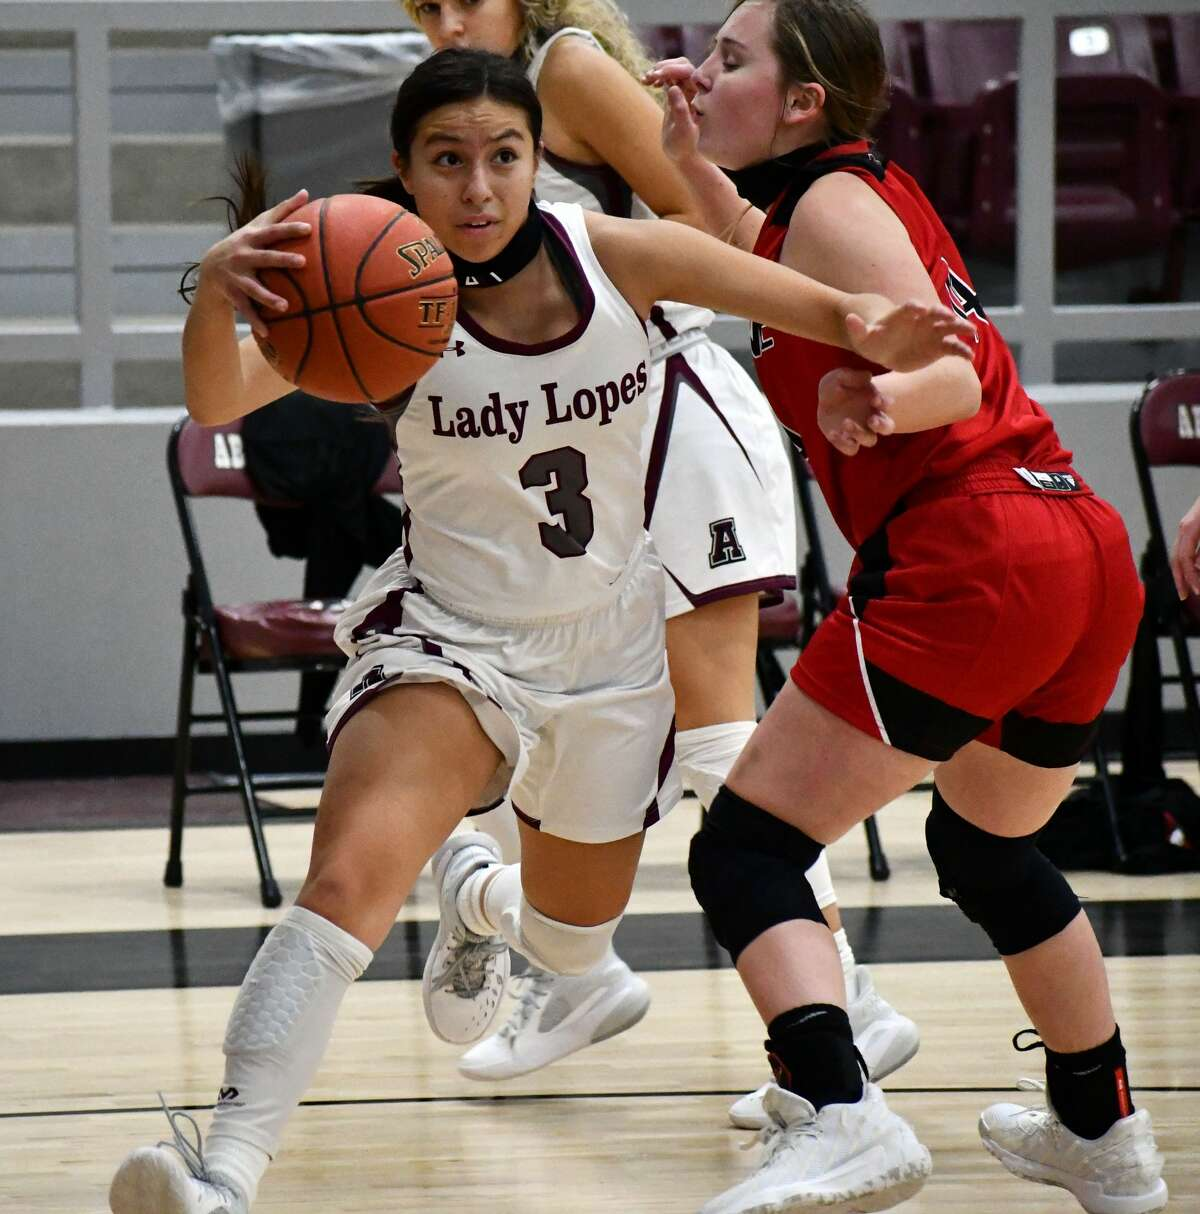 Abernathy's Leah Villareal slips past a New Home defender during their non-district girls basketball game on Dec. 5, 2020 at Abernathy High School.